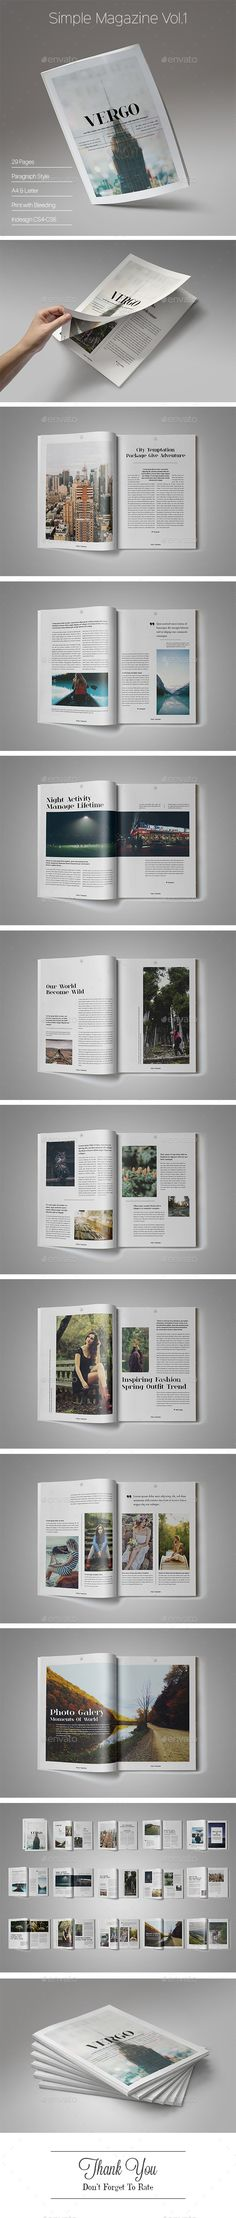 Simple Magazine Template InDesign INDD. Download here: http://graphicriver.net/item/simple-magazine-vol1/15592358?ref=ksioks